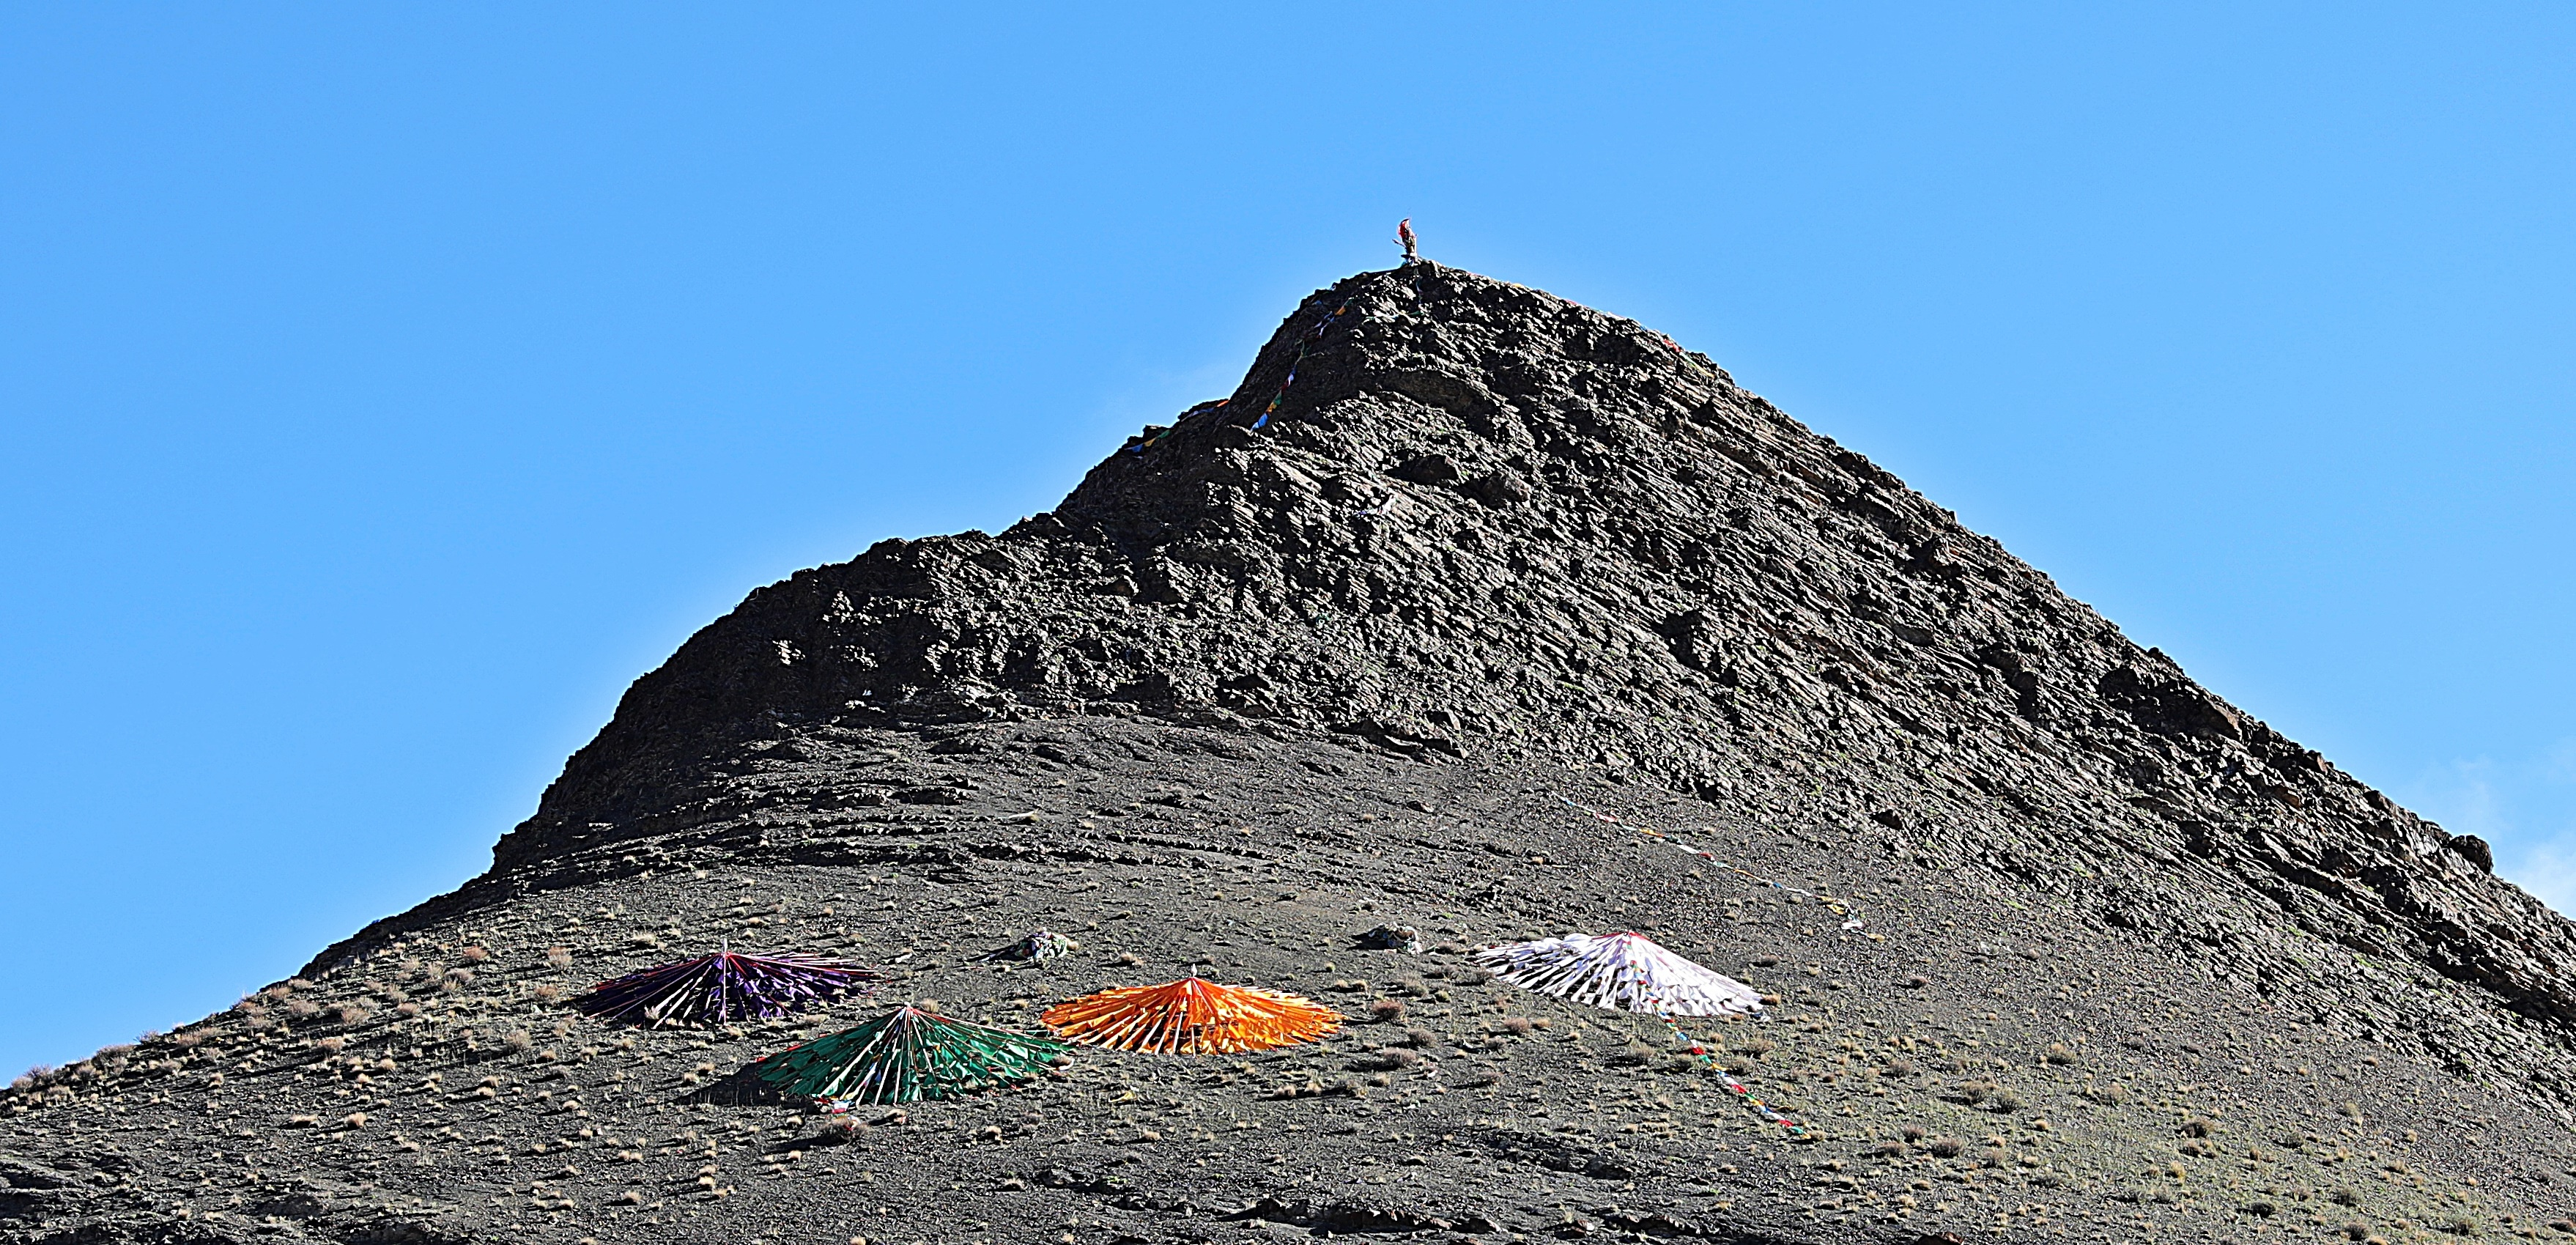 Prayer flags at Simi La (Pass)